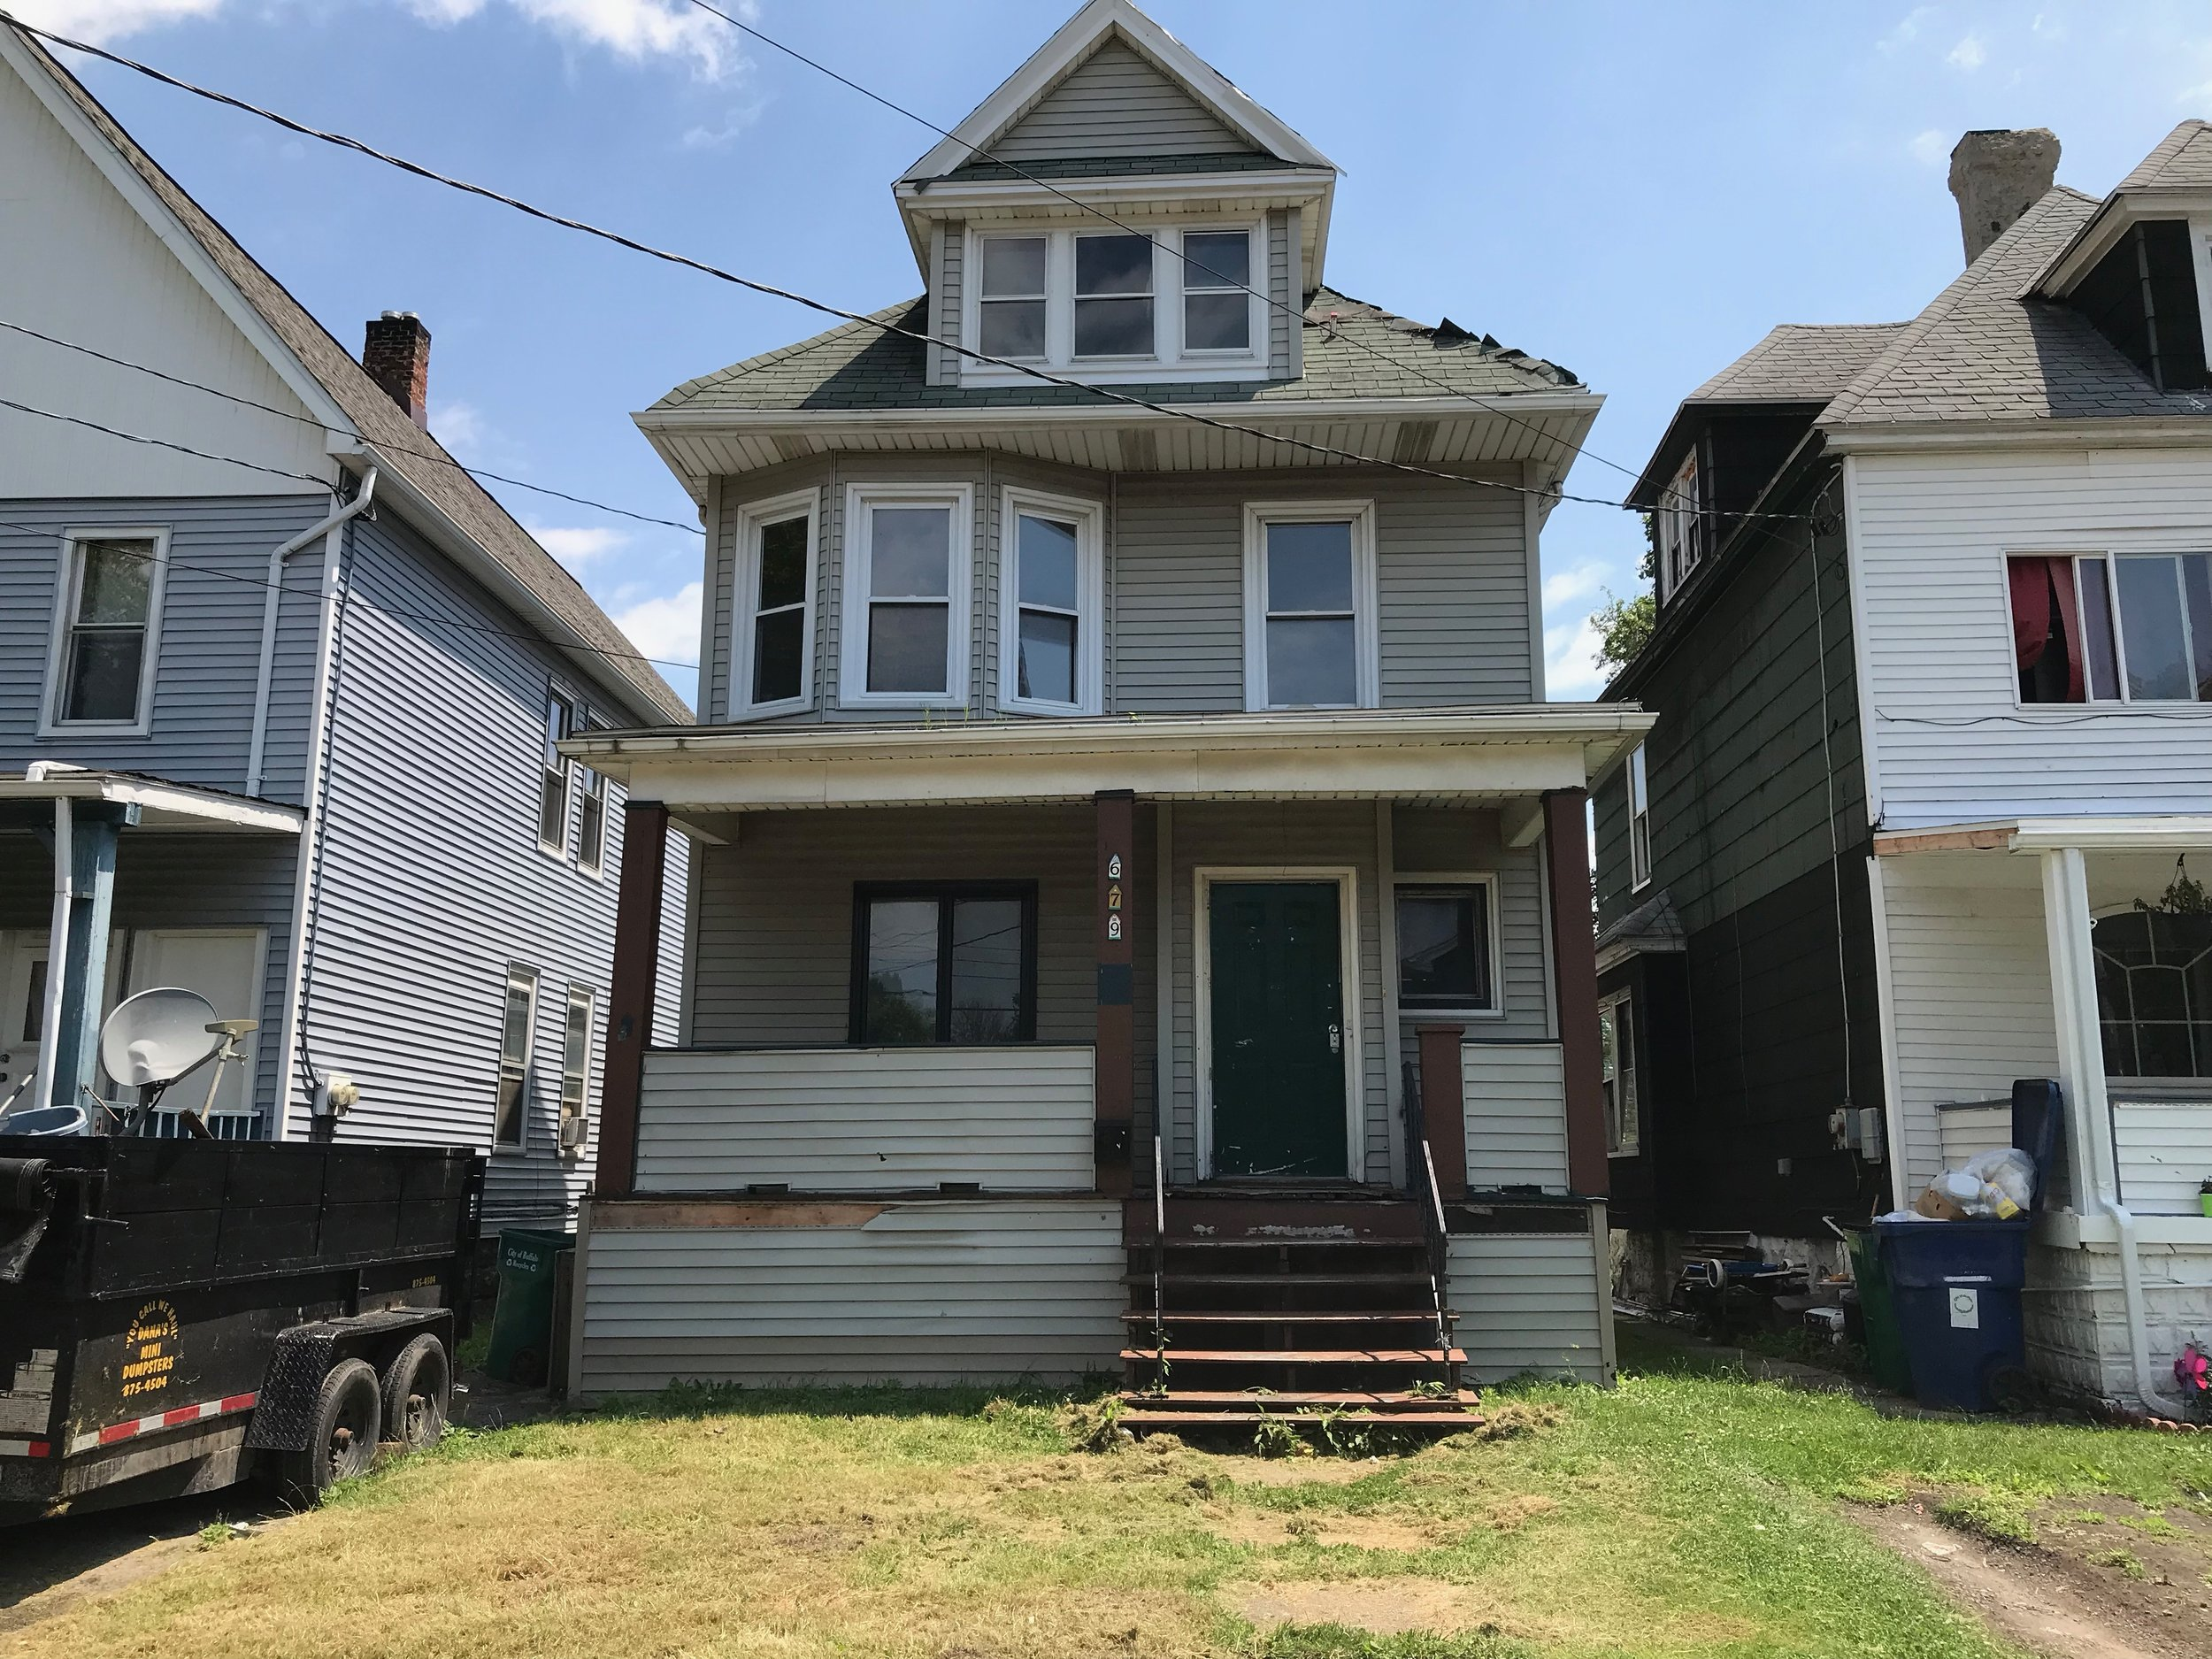 SOLD: 679 Hopkins St, Buffalo | $40,000